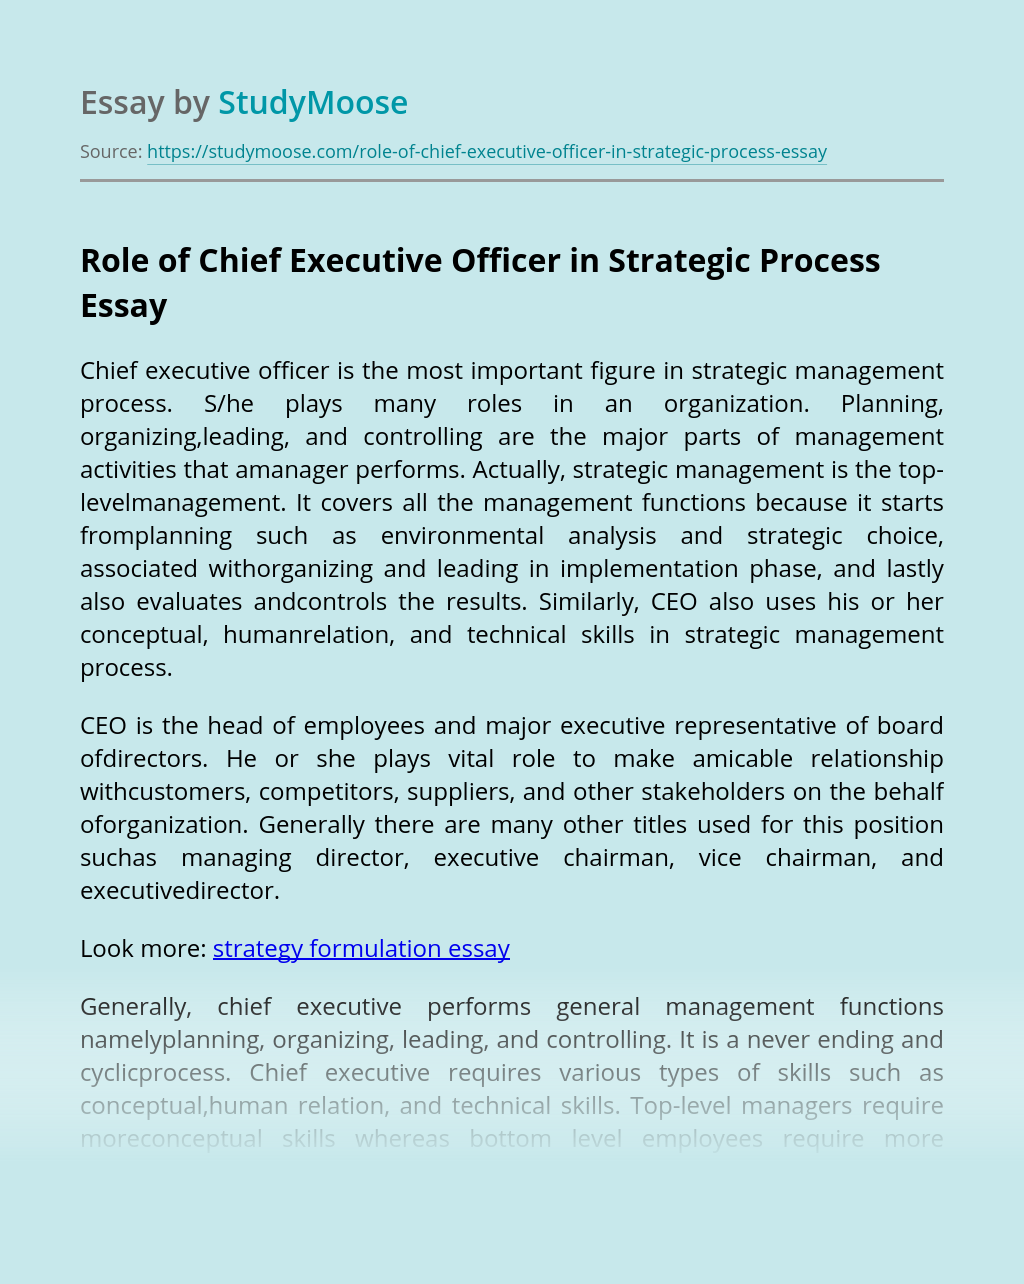 Role of Chief Executive Officer in Strategic Managment